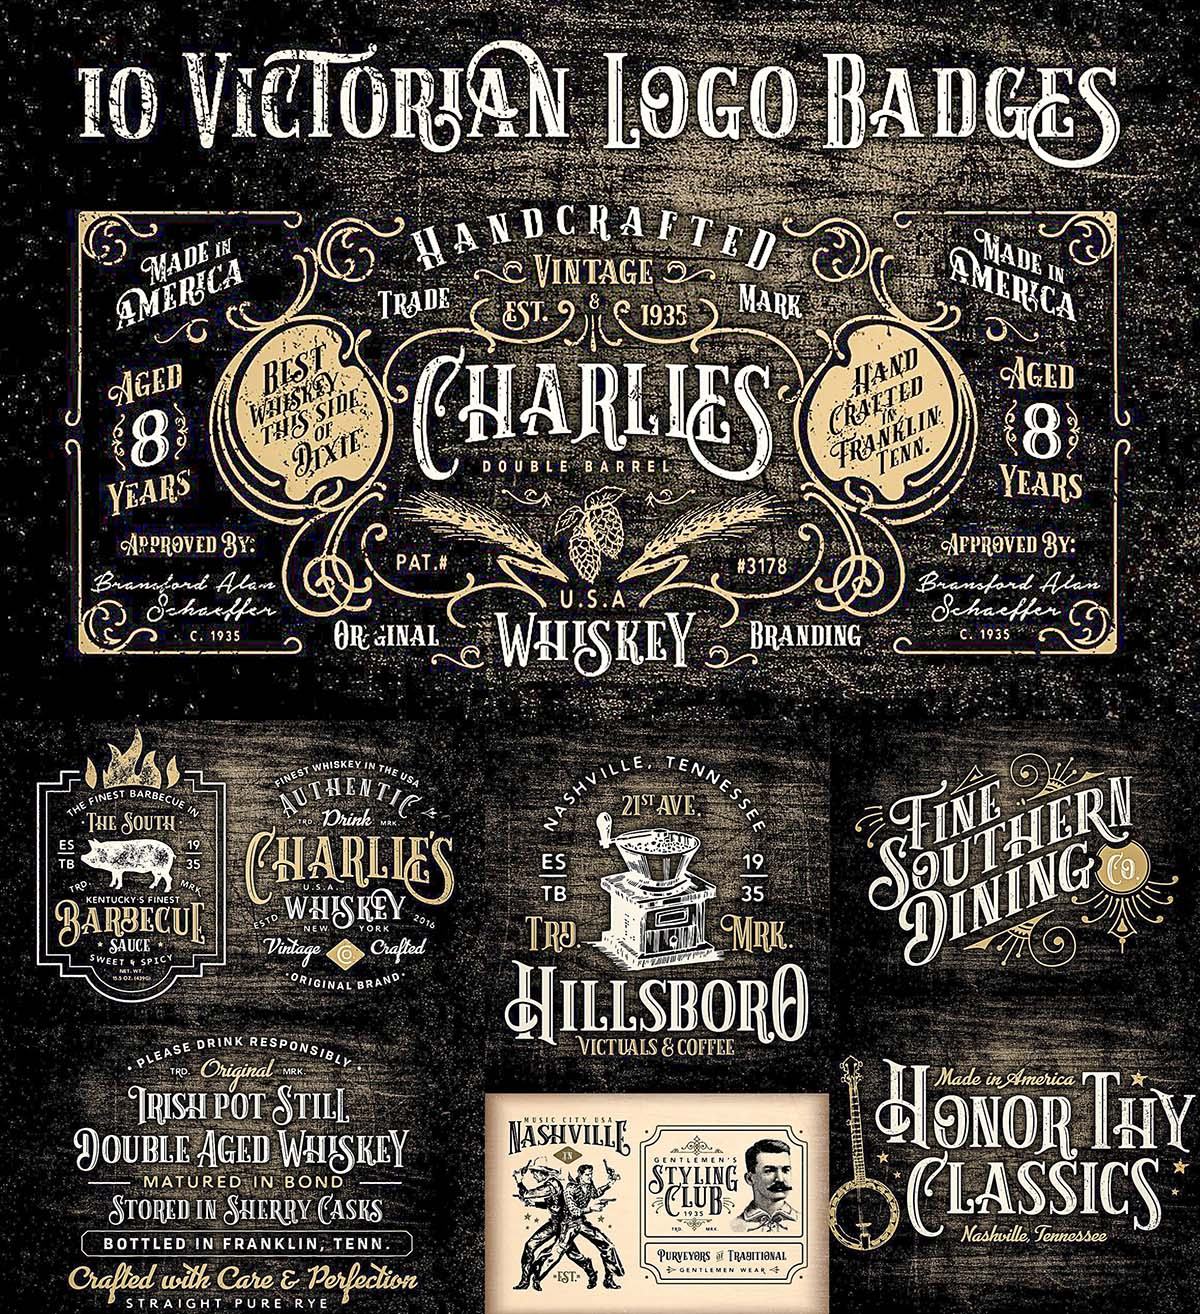 Vintage Victorian Badges Collection